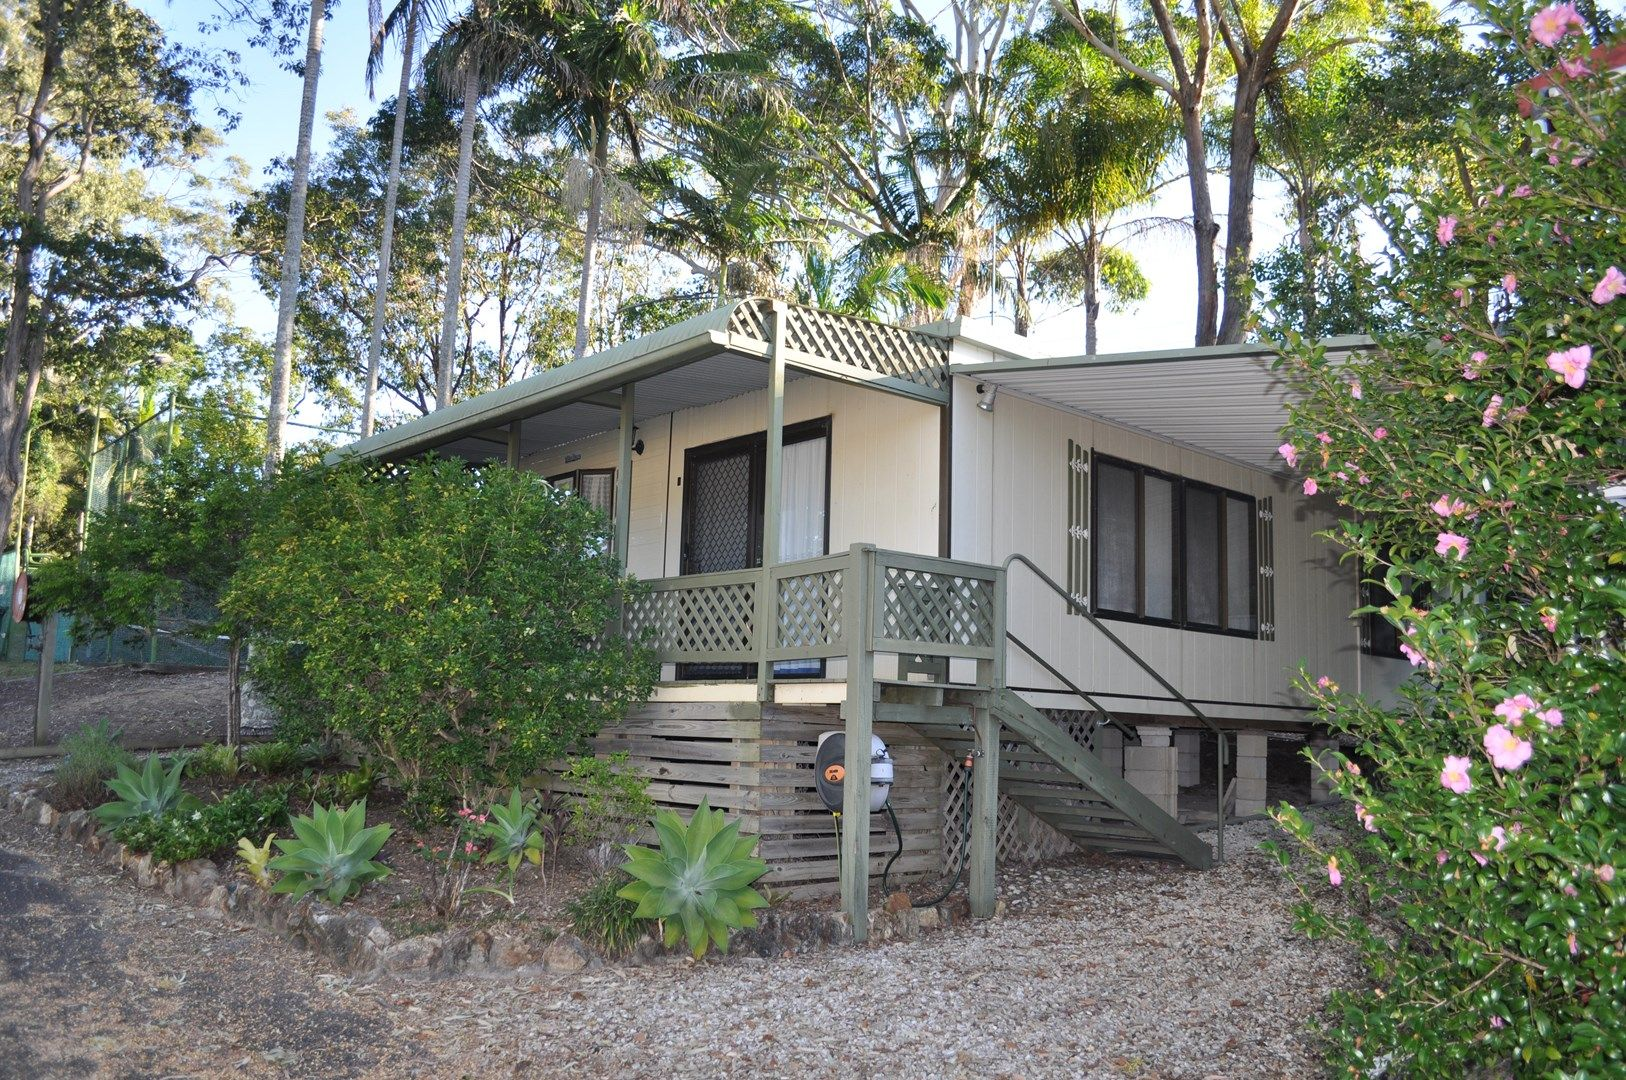 Site 1/8 Gateway The Pines, Hearnes Lake Road, Woolgoolga NSW 2456, Image 0